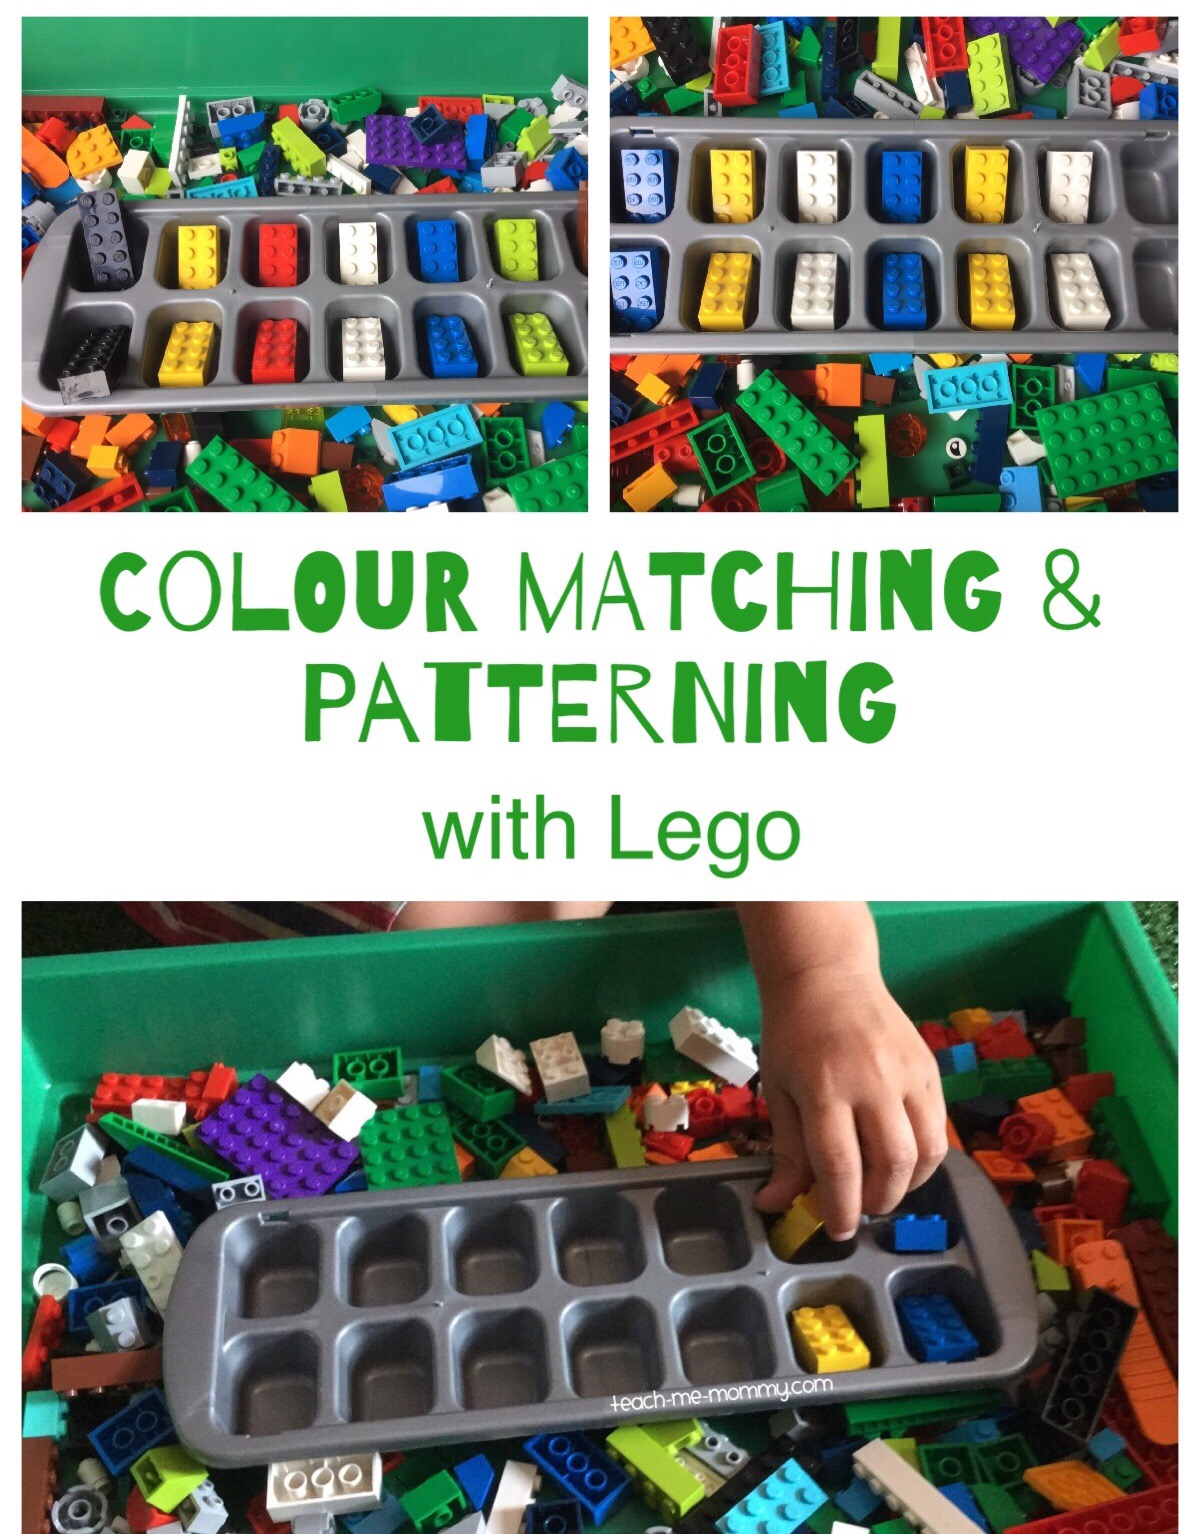 Lego Colour Matching & Patterning - Teach Me Mommy